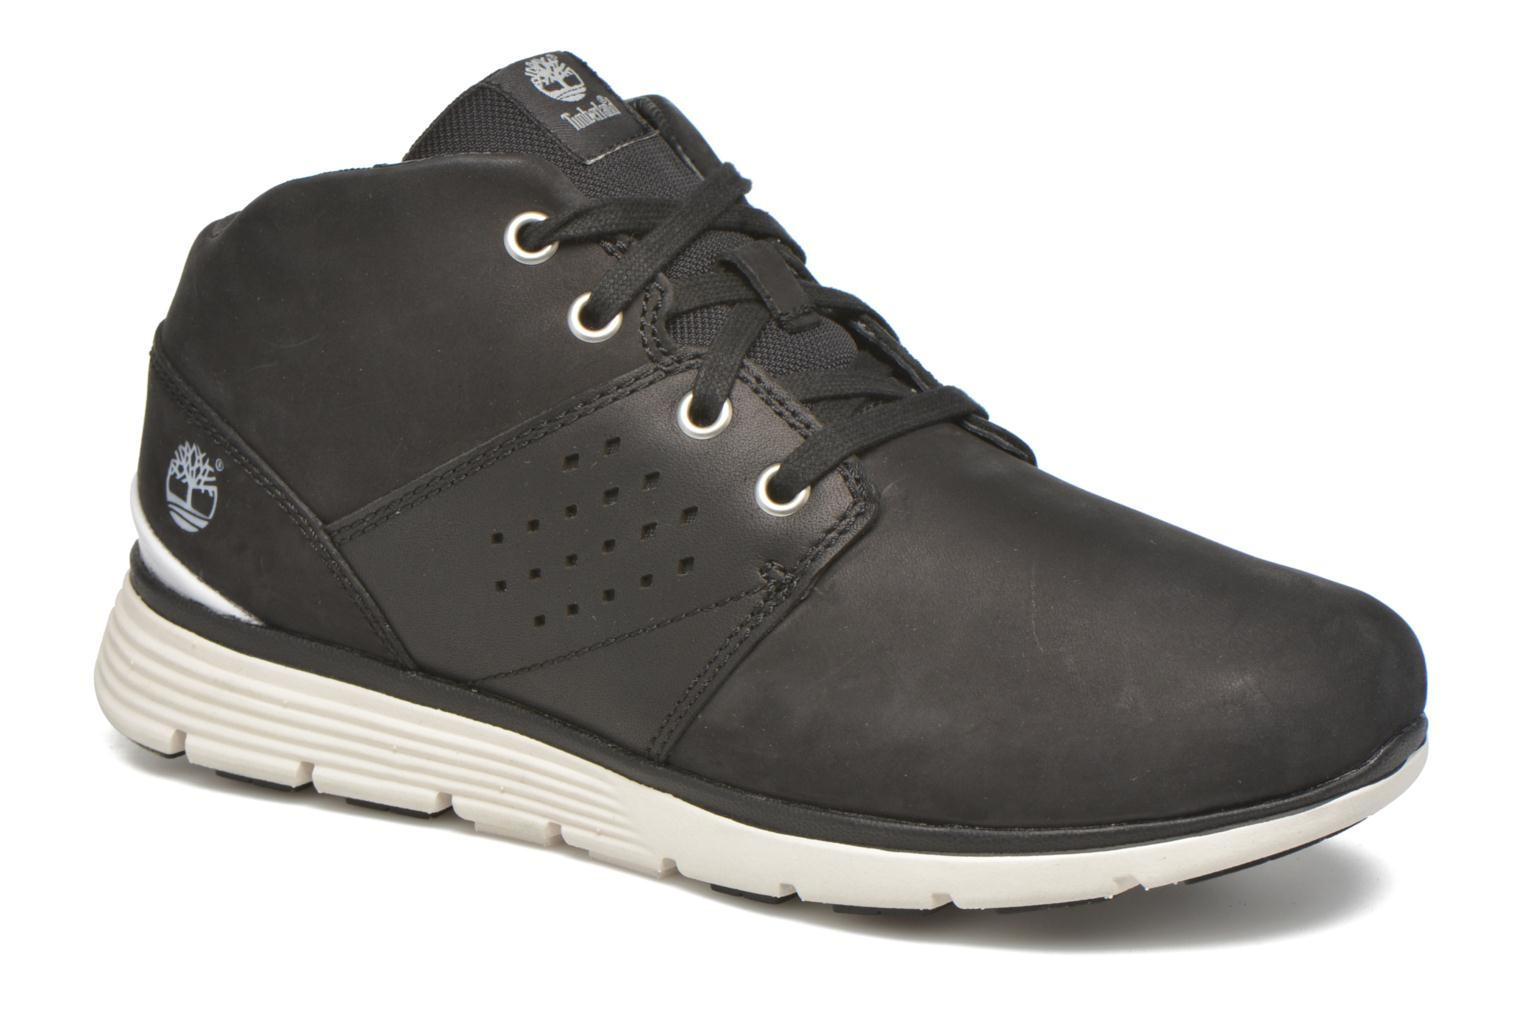 sneakers-killington-chukka-by-timberland